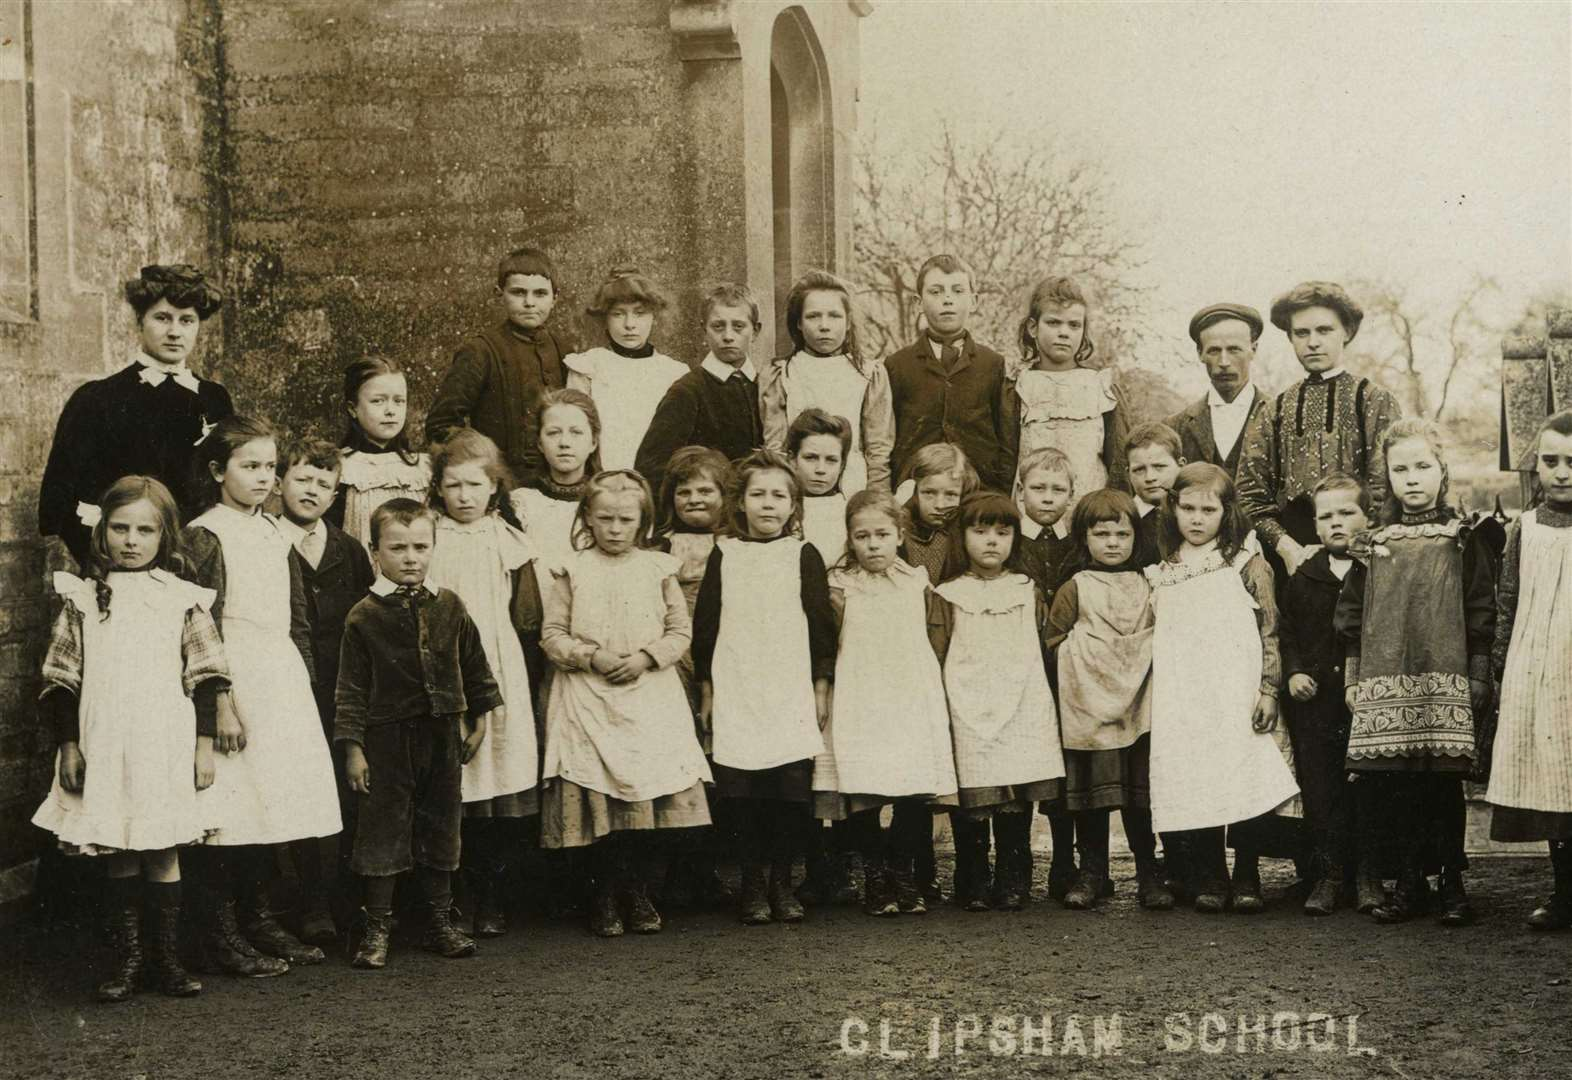 New exhibition looks at early years of Rutland's village schools